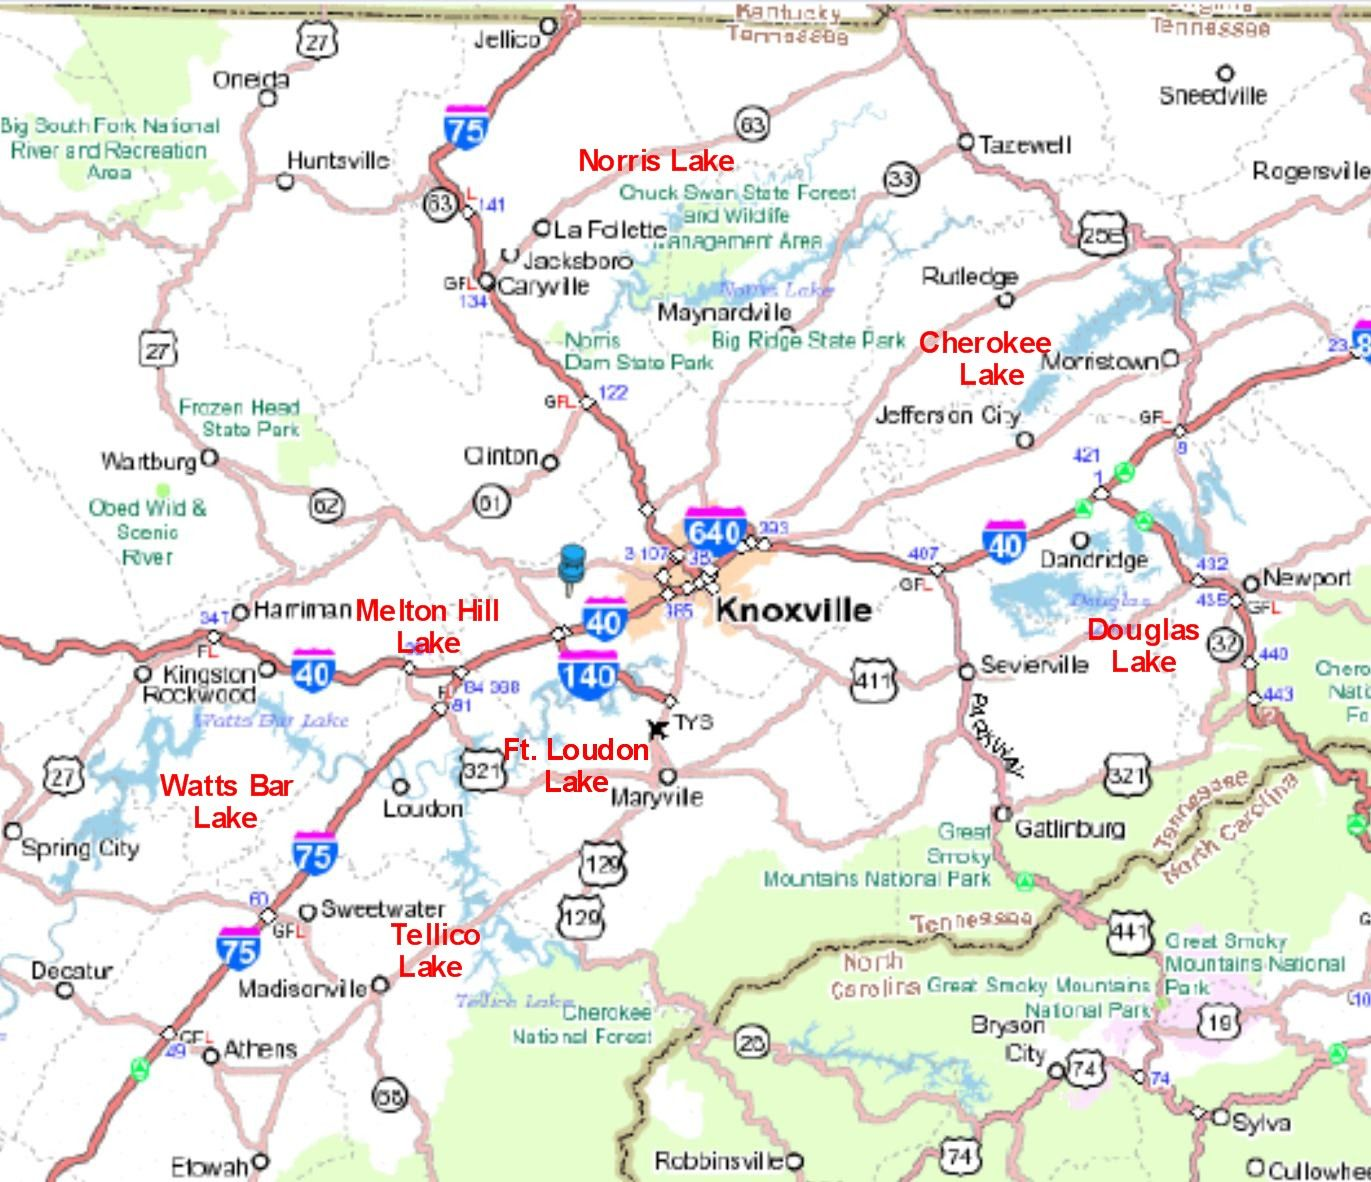 lakes in east tennessee map for Knoxville Tennessee and East